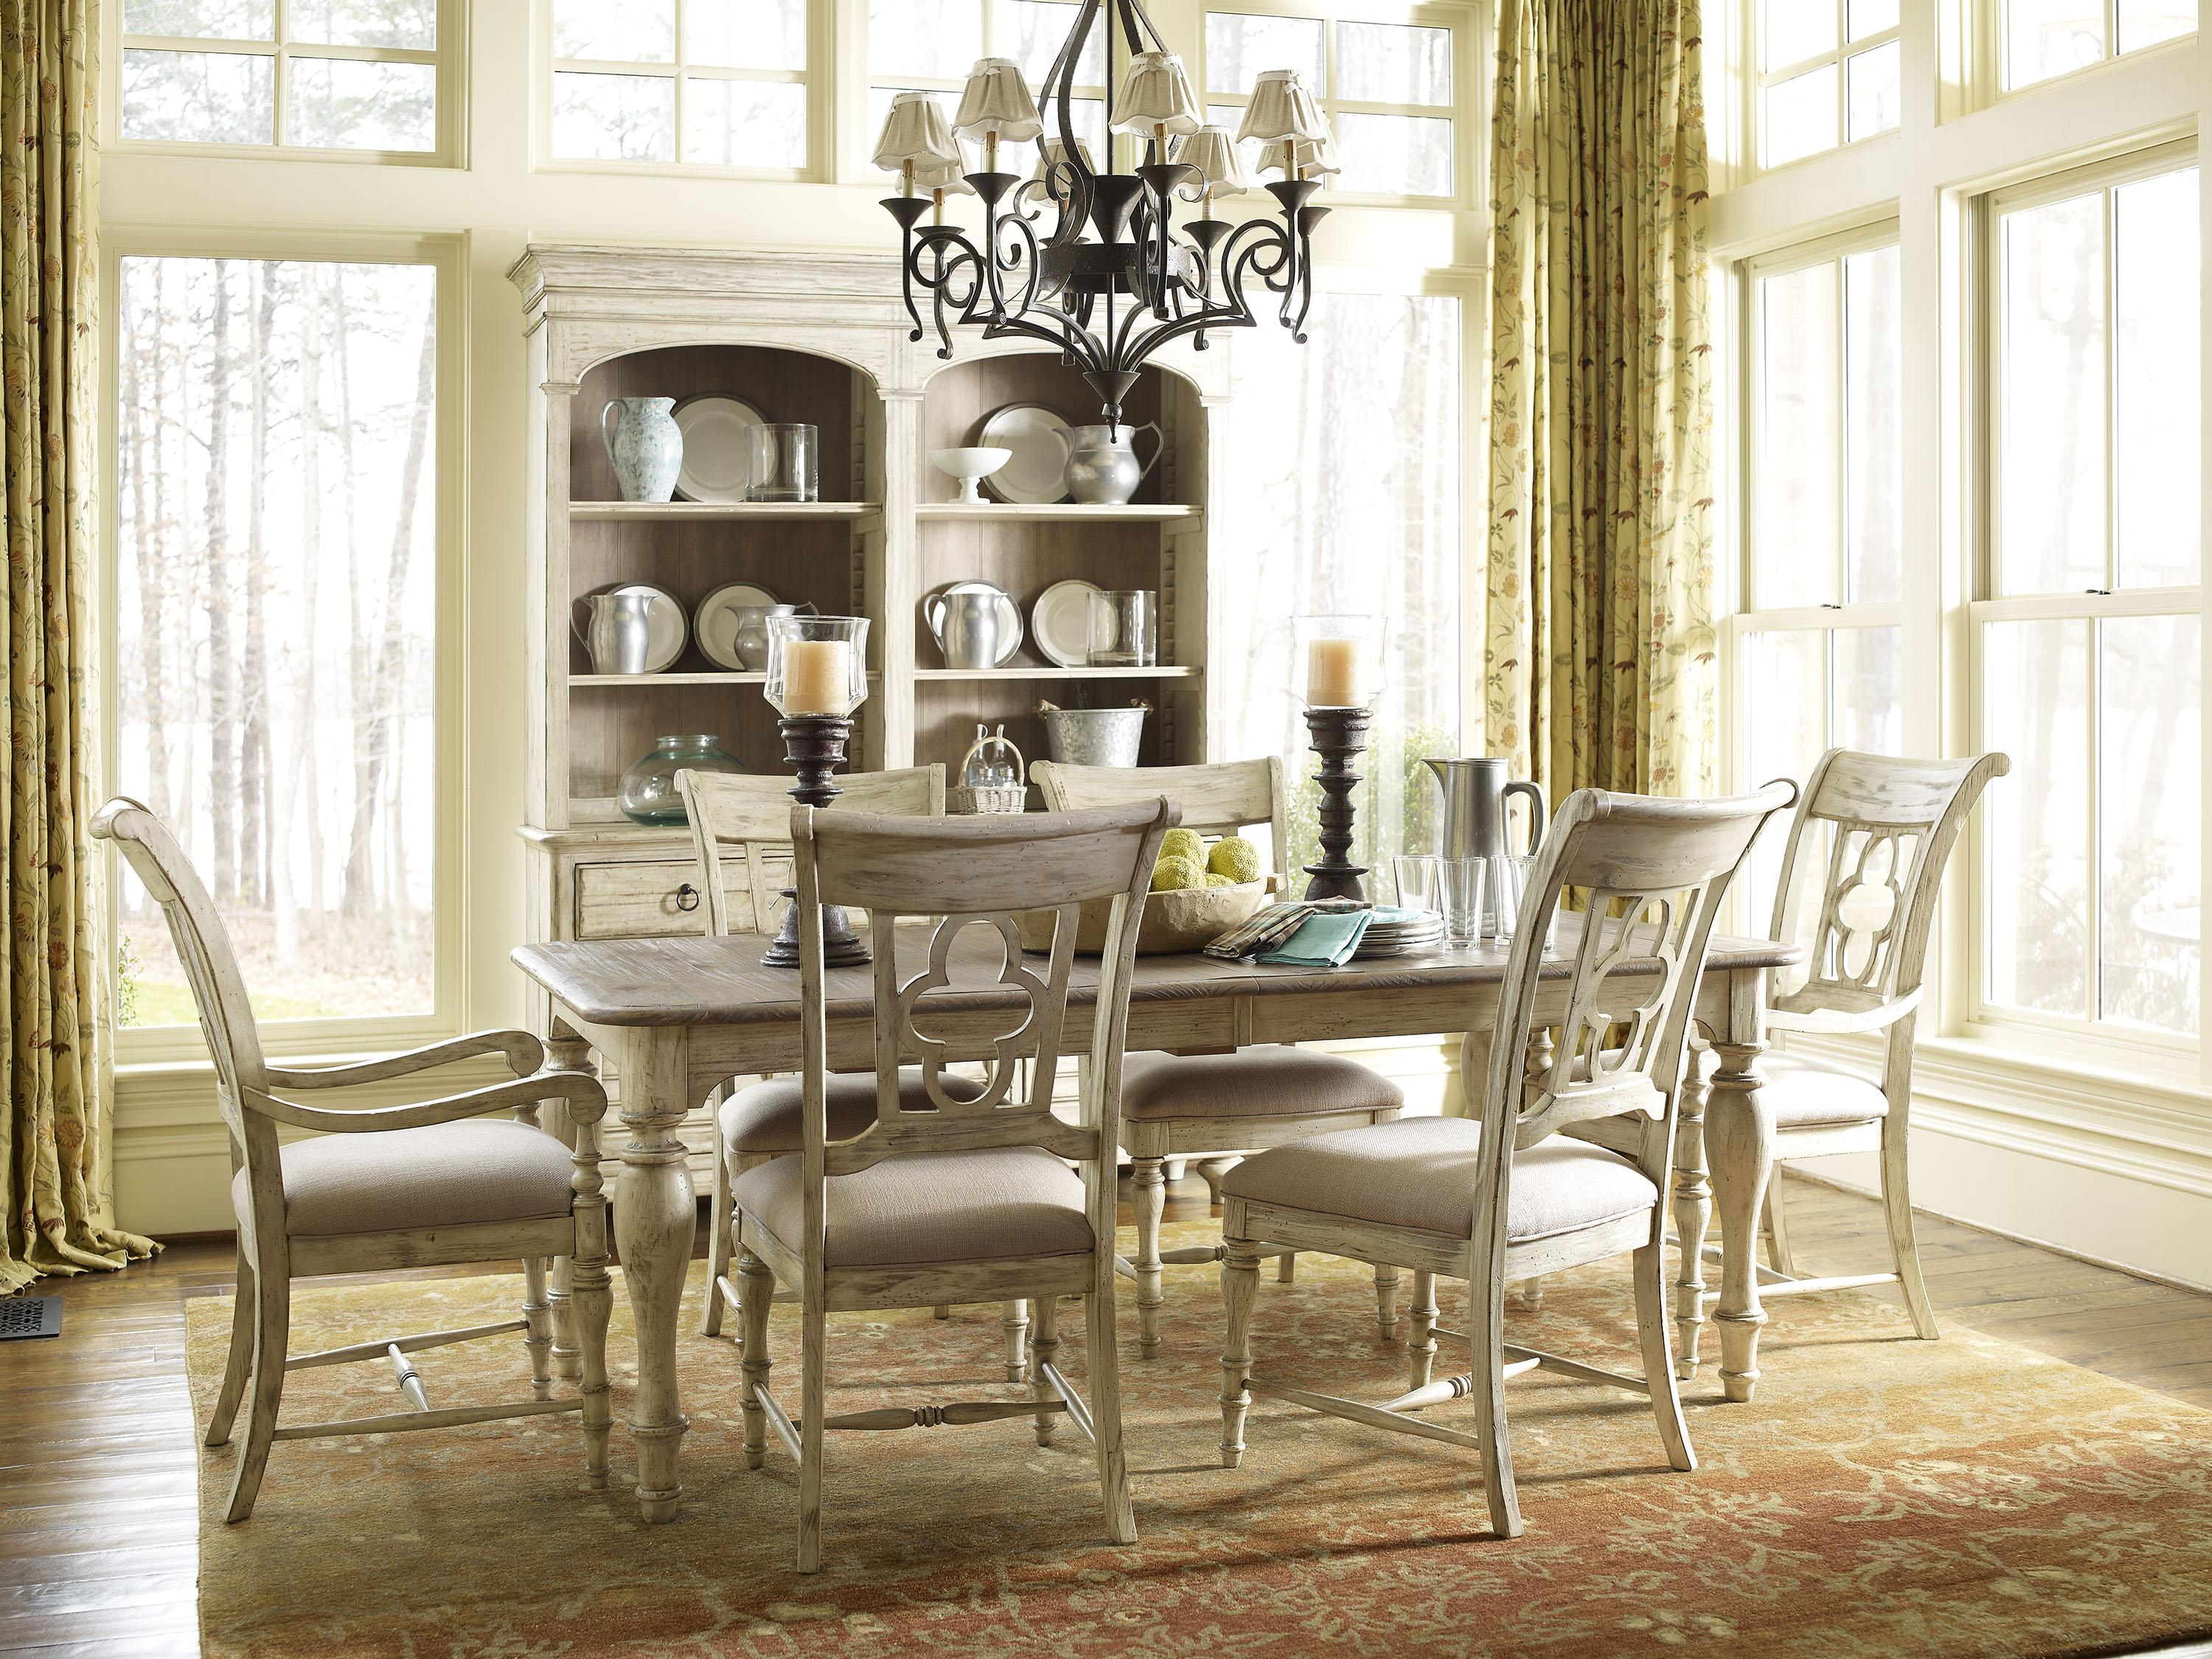 Weatherford Dining Room Group 1 by Kincaid Furniture at Northeast Factory Direct